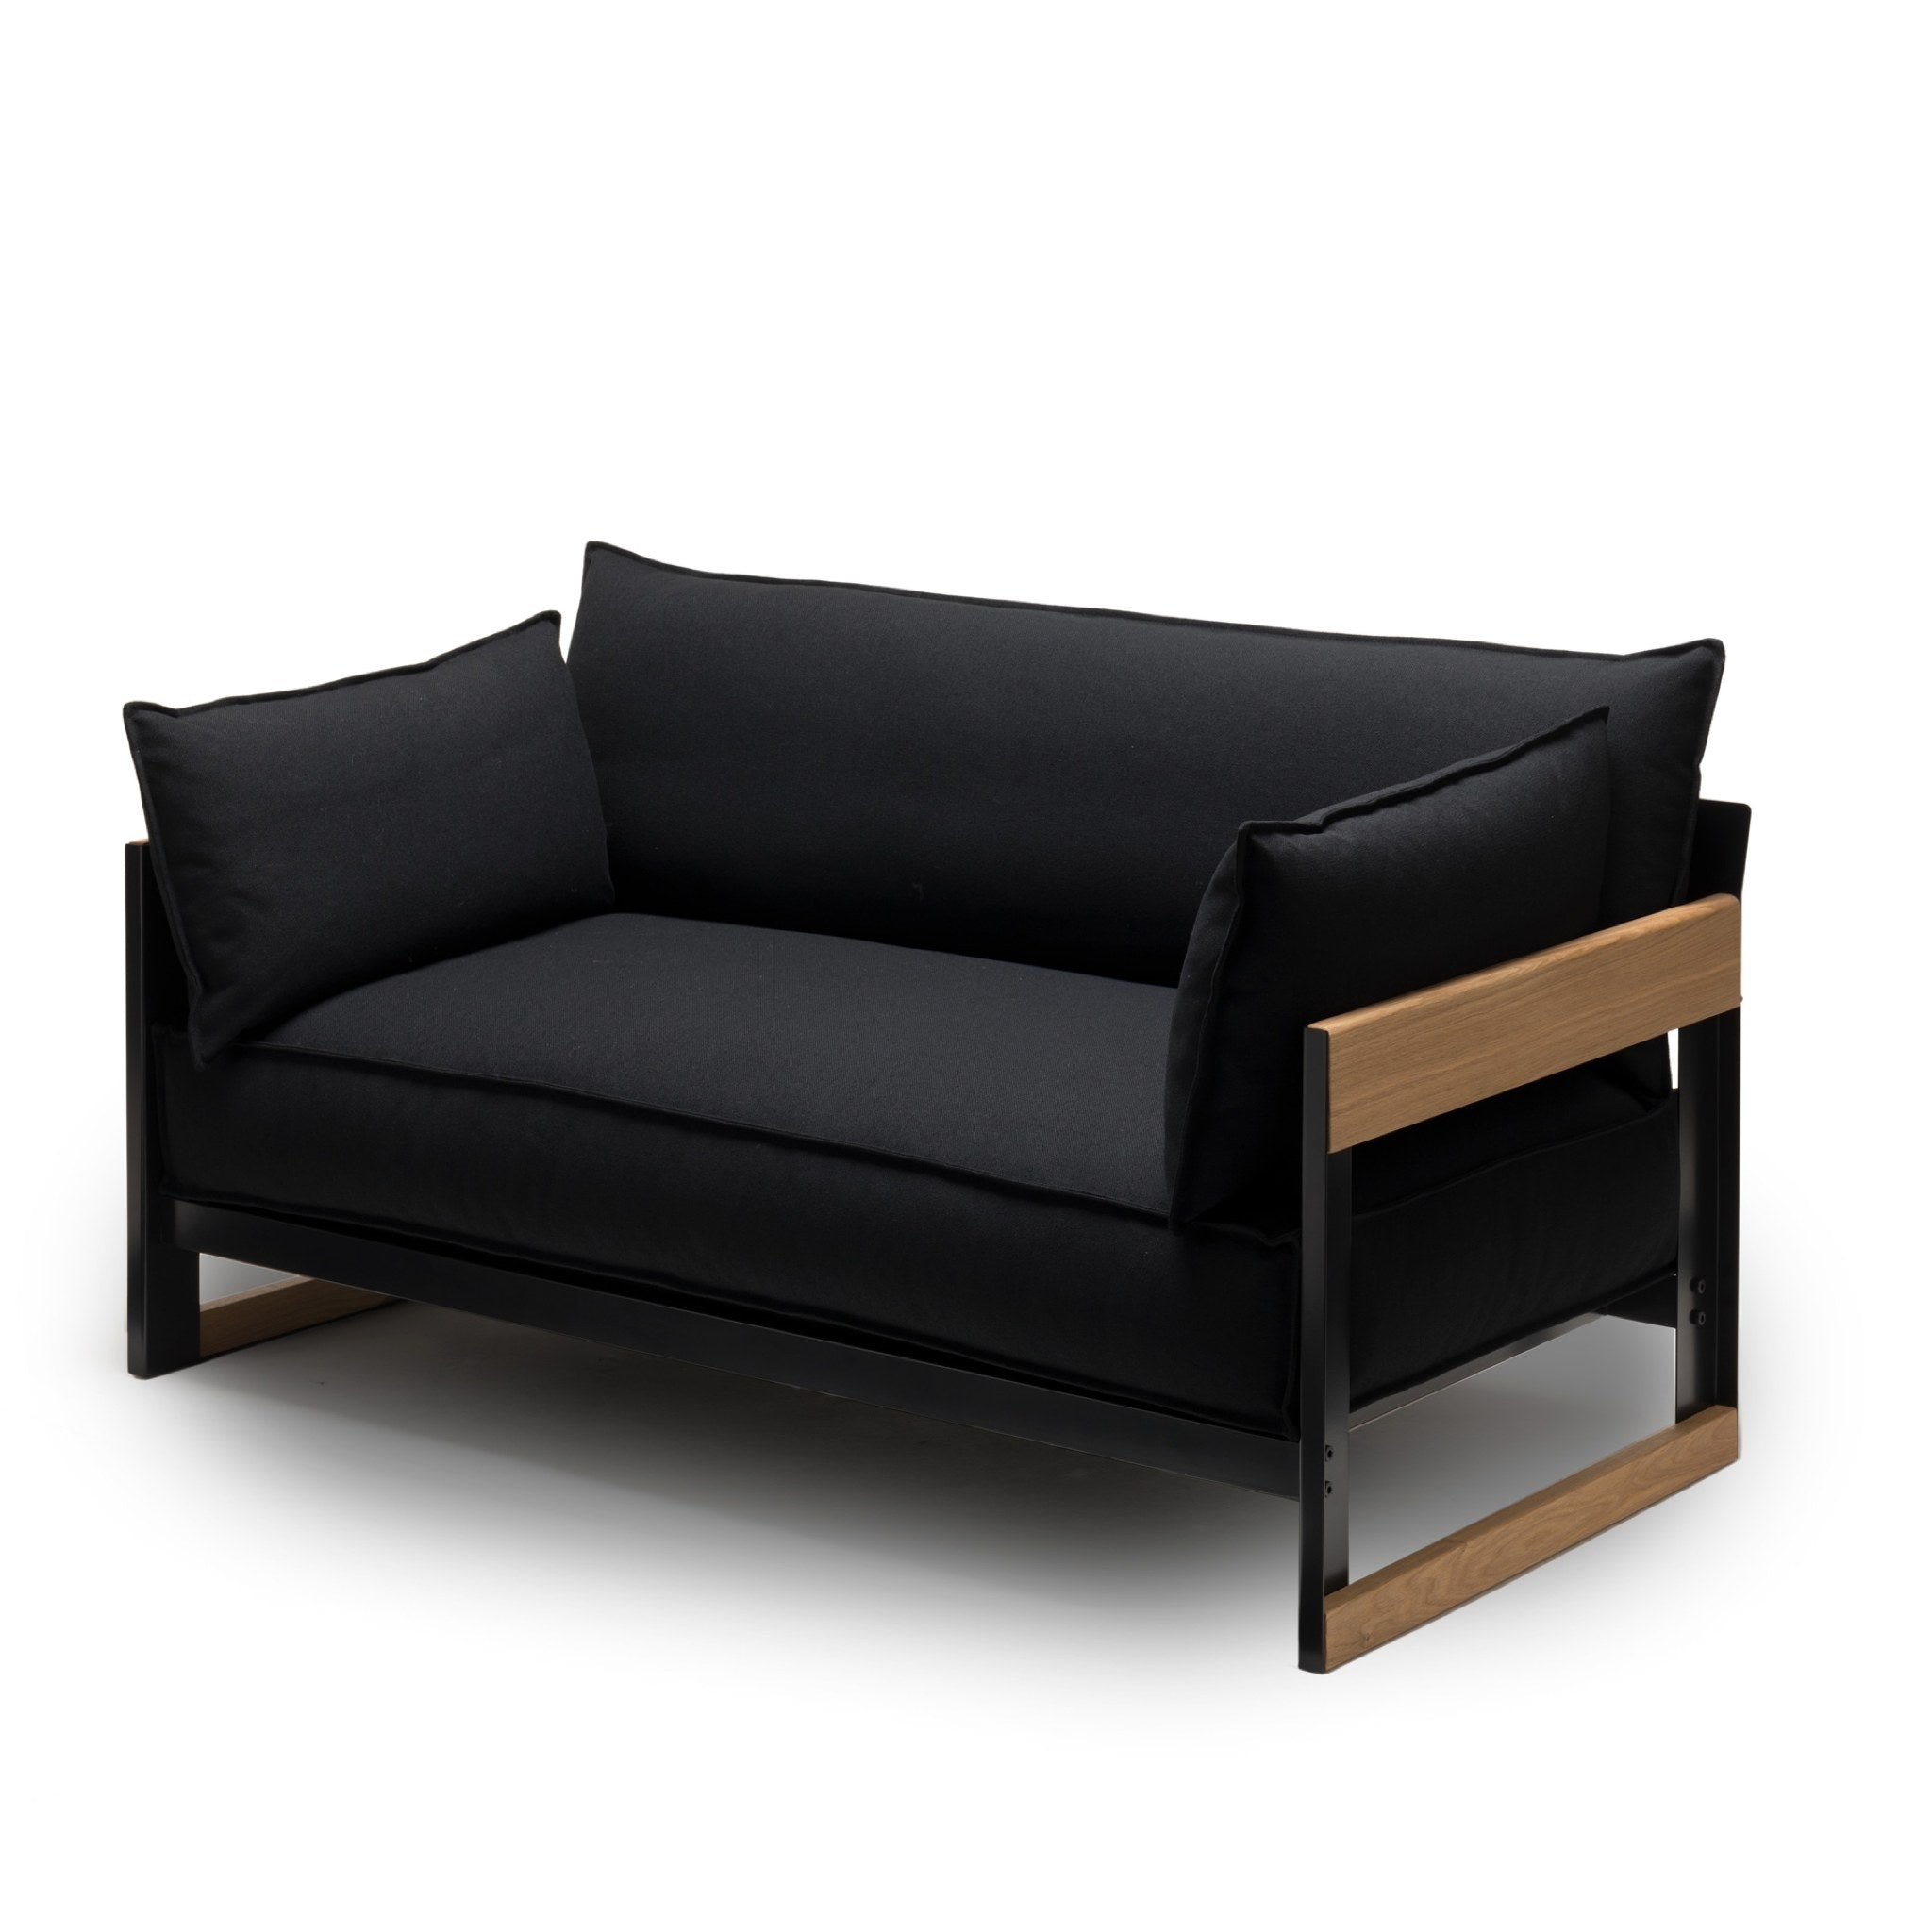 Cassette Sofa by Established & Sons